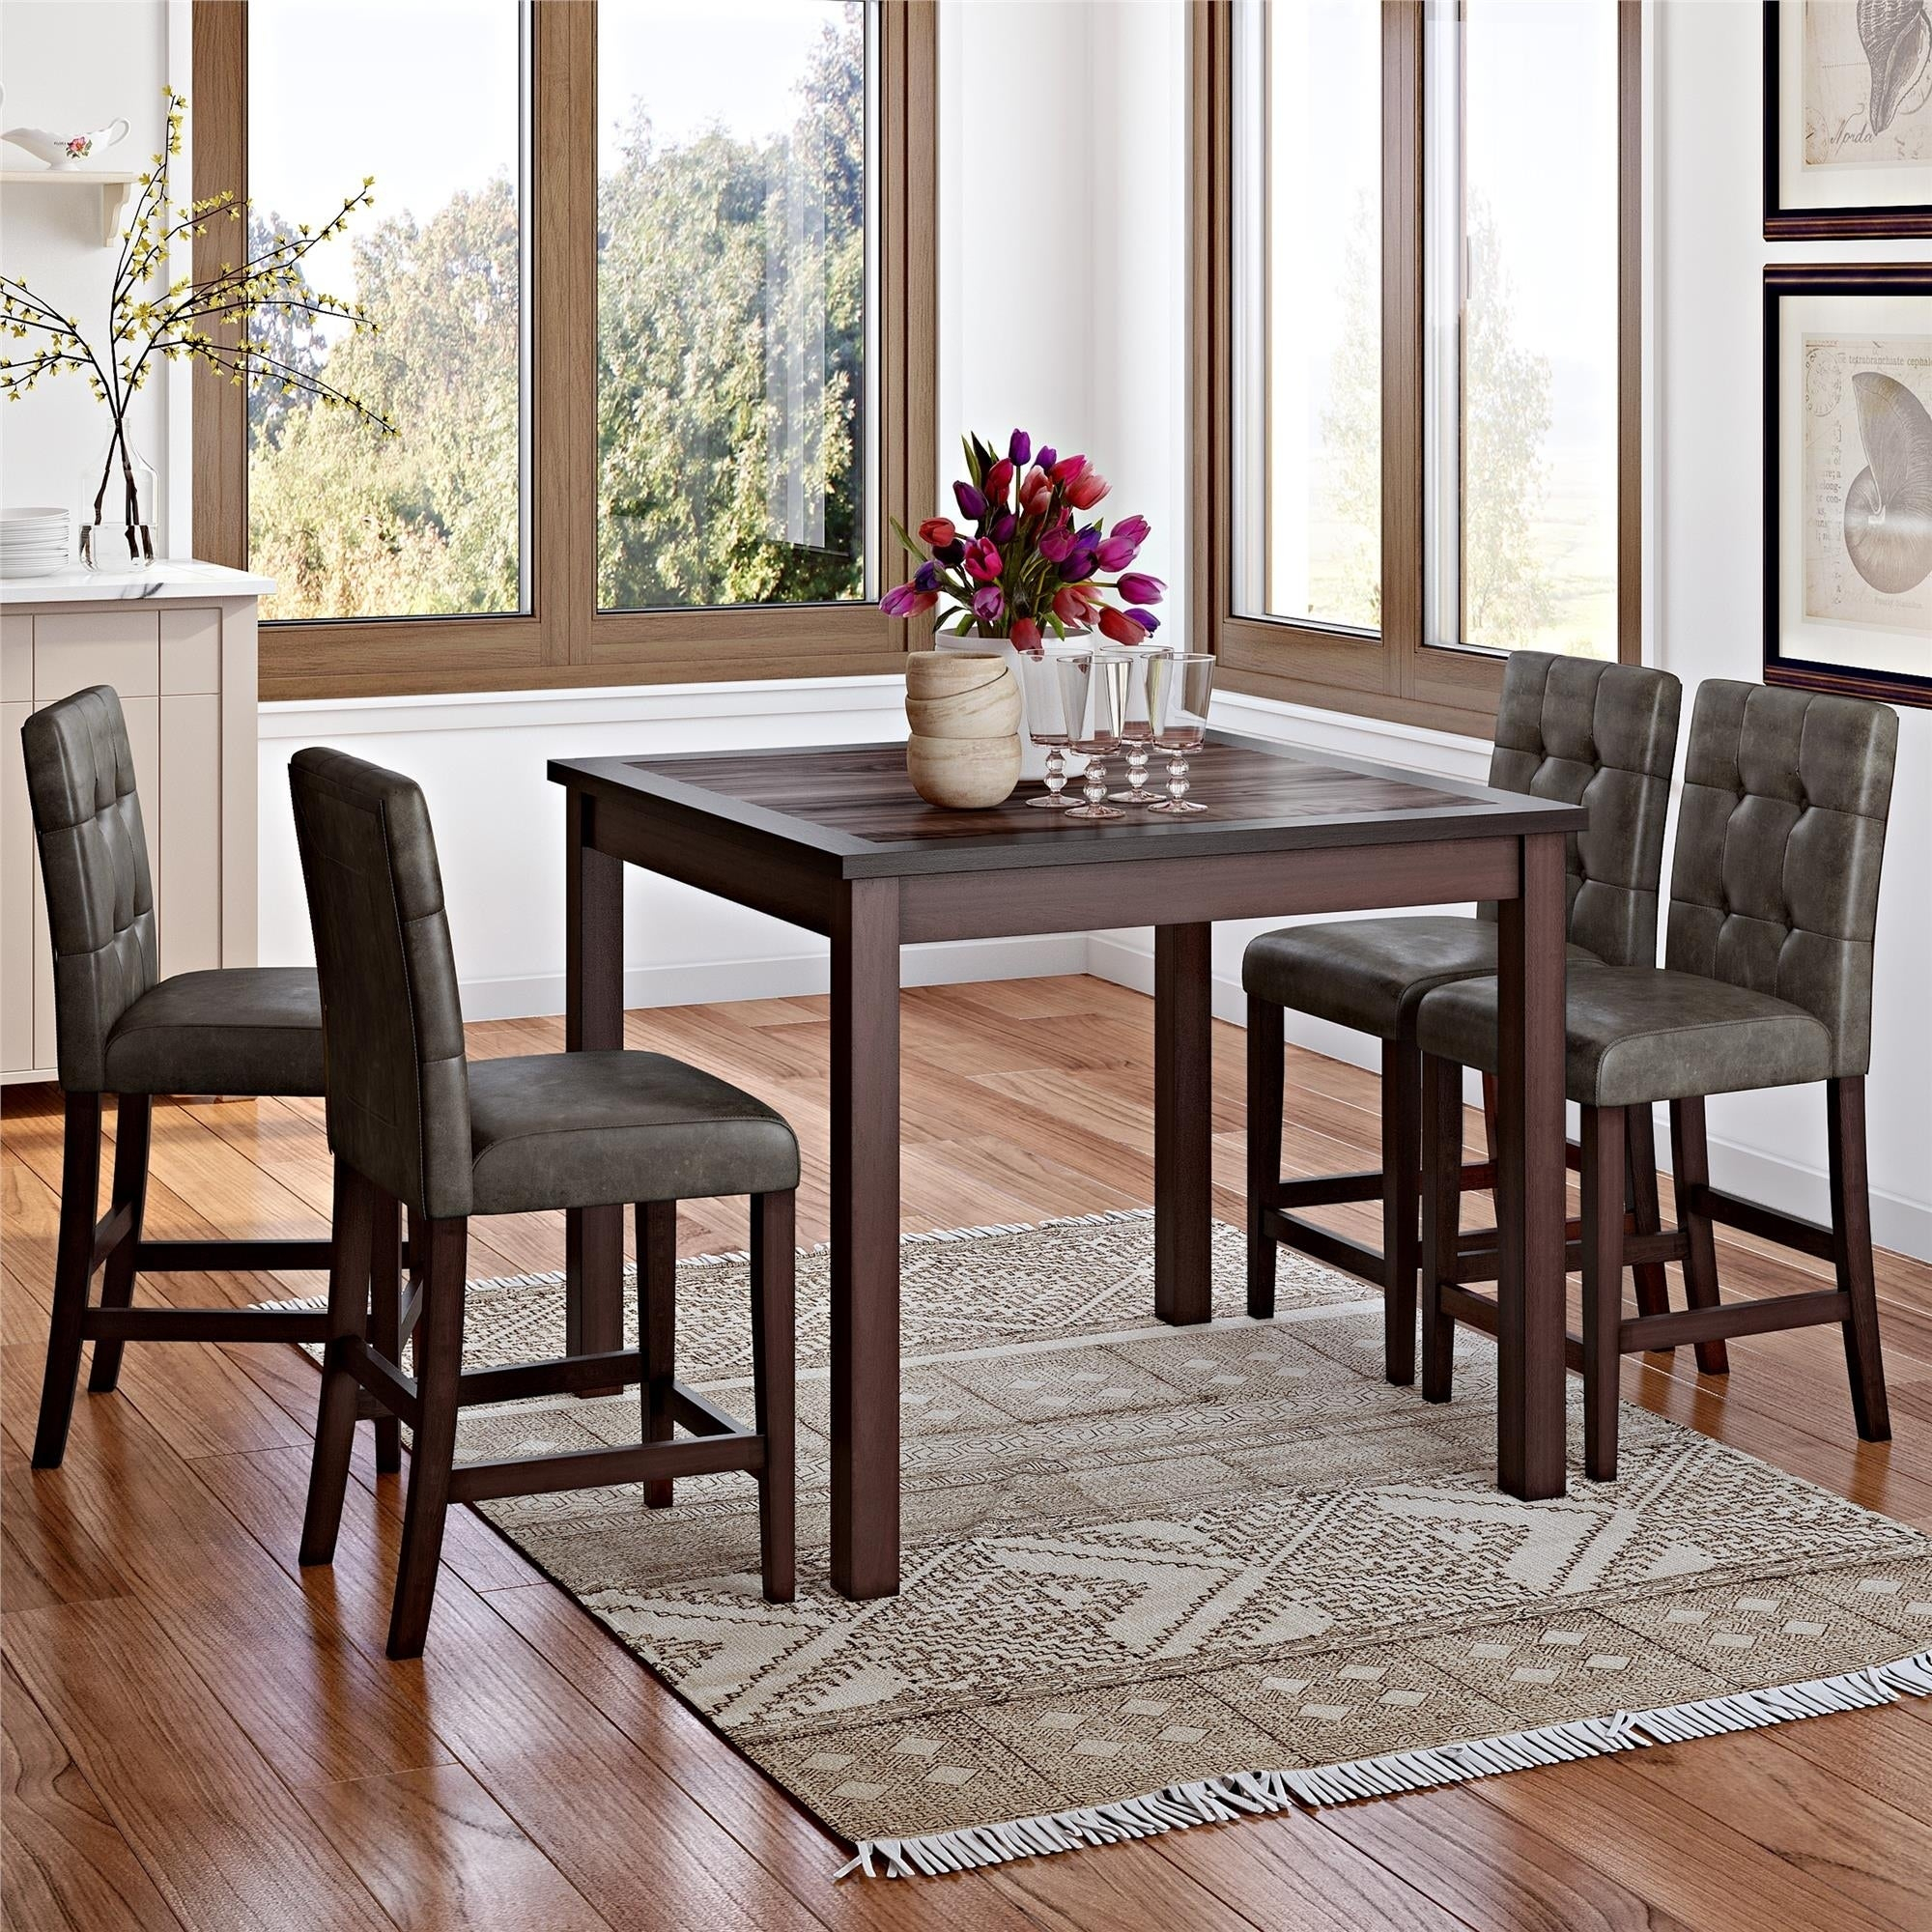 Gracewood Hollow Betancourt Espresso 5 Piece Counter Height Dining Set Pertaining To Best And Newest Bettencourt 3 Piece Counter Height Solid Wood Dining Sets (Photo 18 of 20)